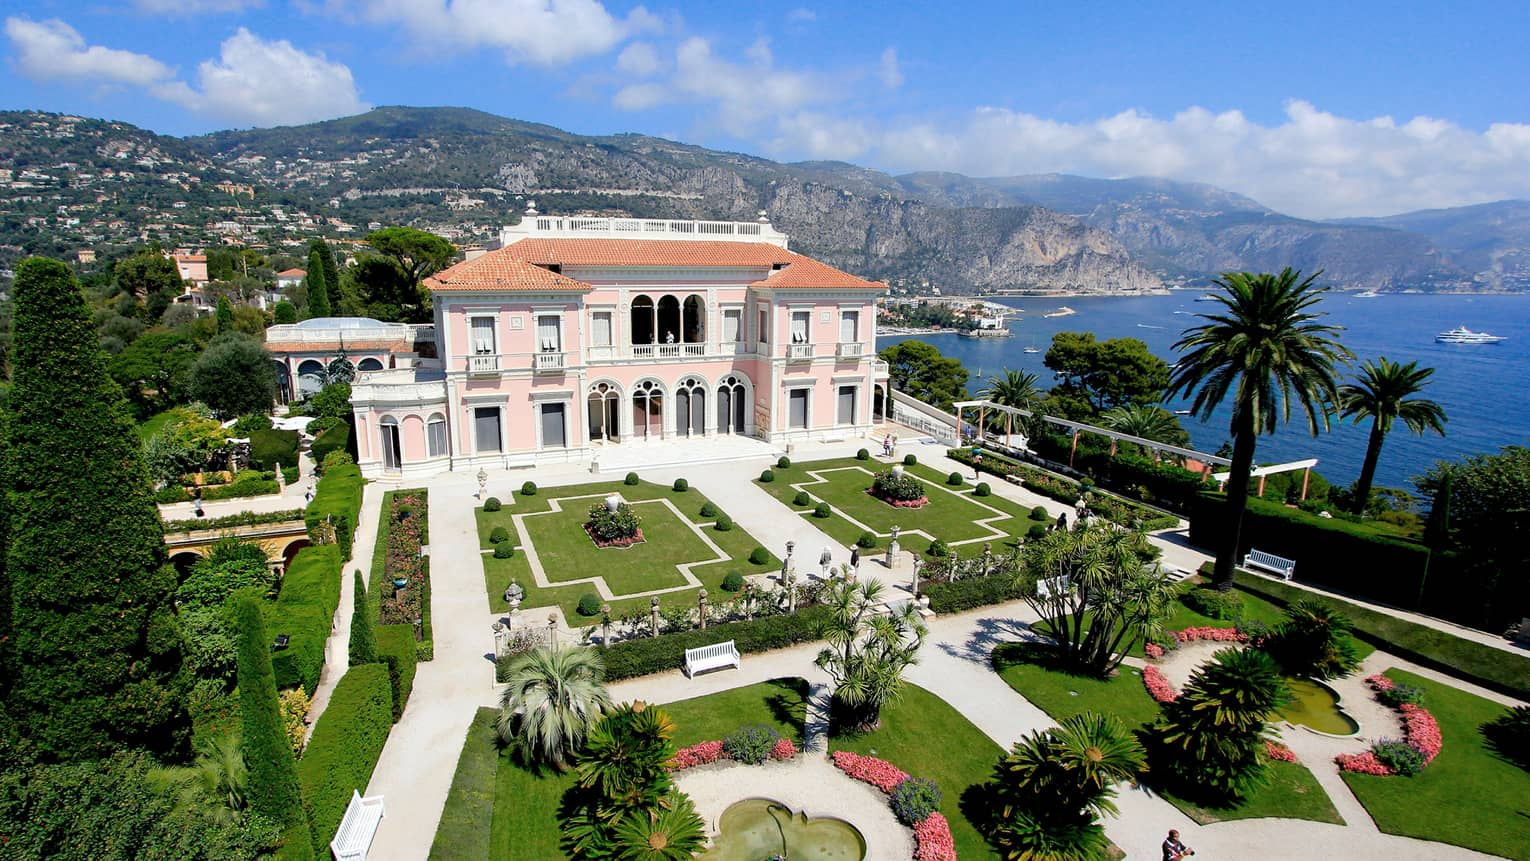 The Grand Hotel, overlooking the water with beautiful arches and pristine gardens